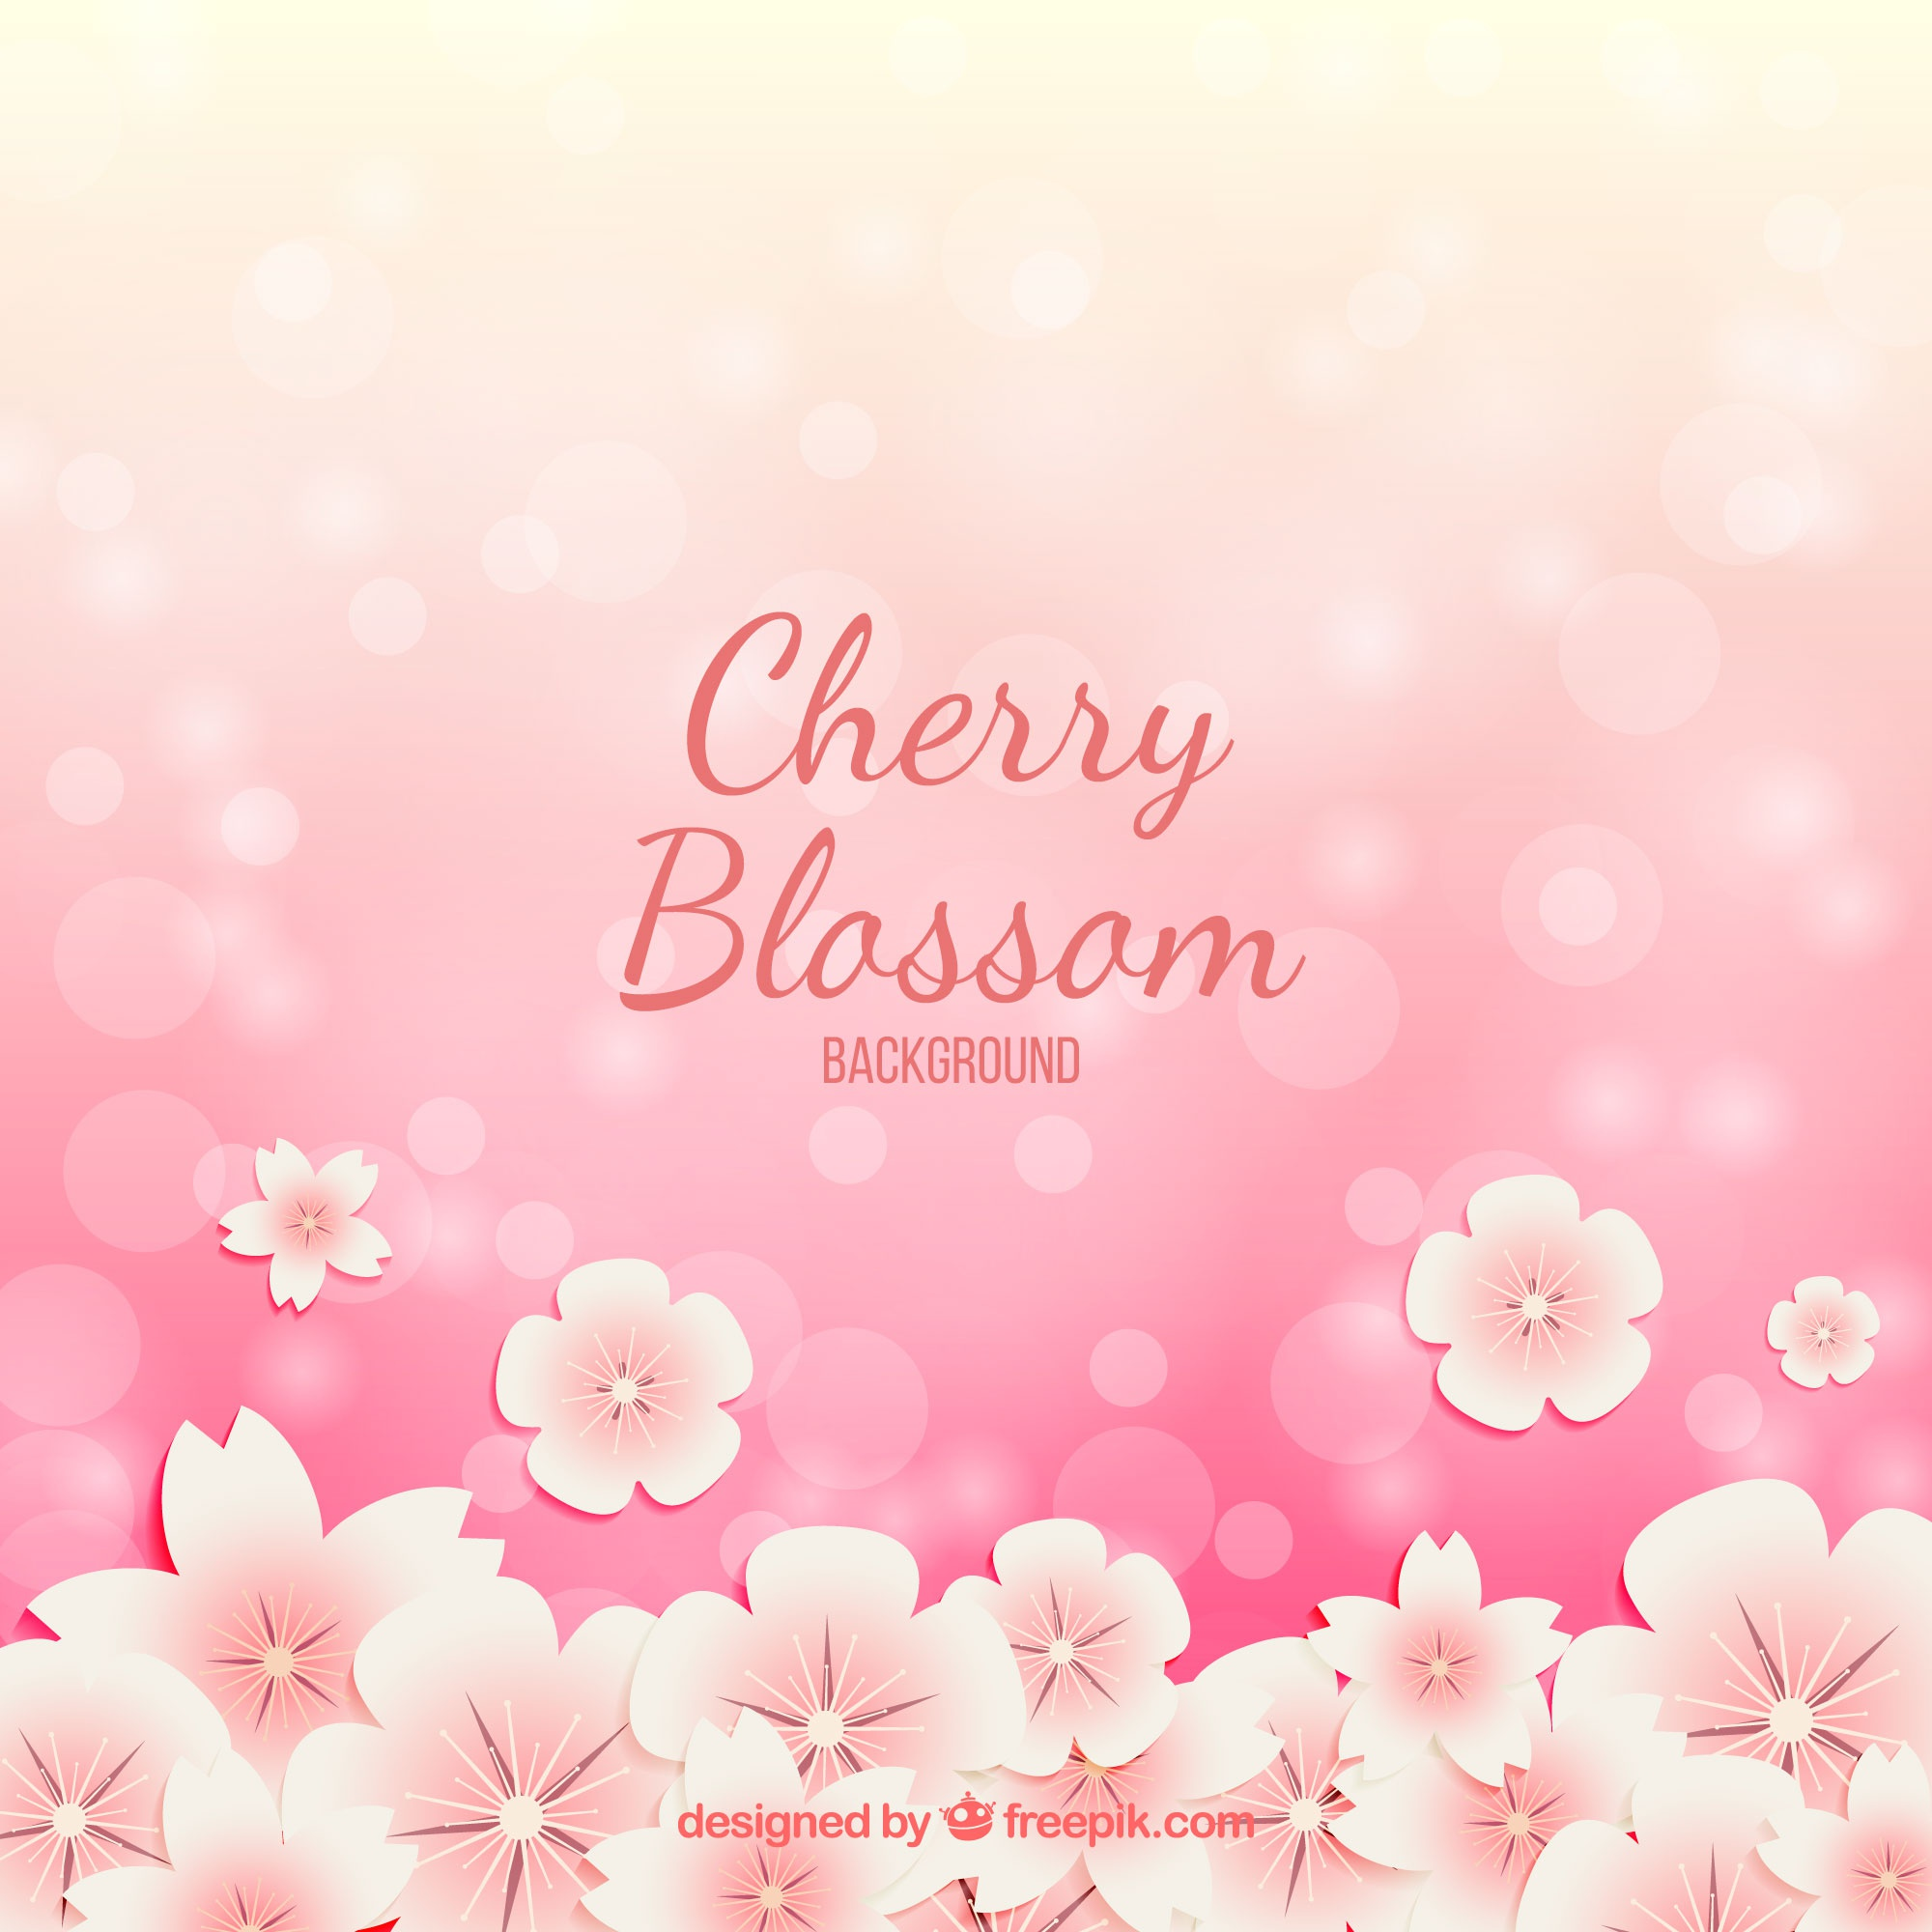 Cherry blossom background with bokeh effect